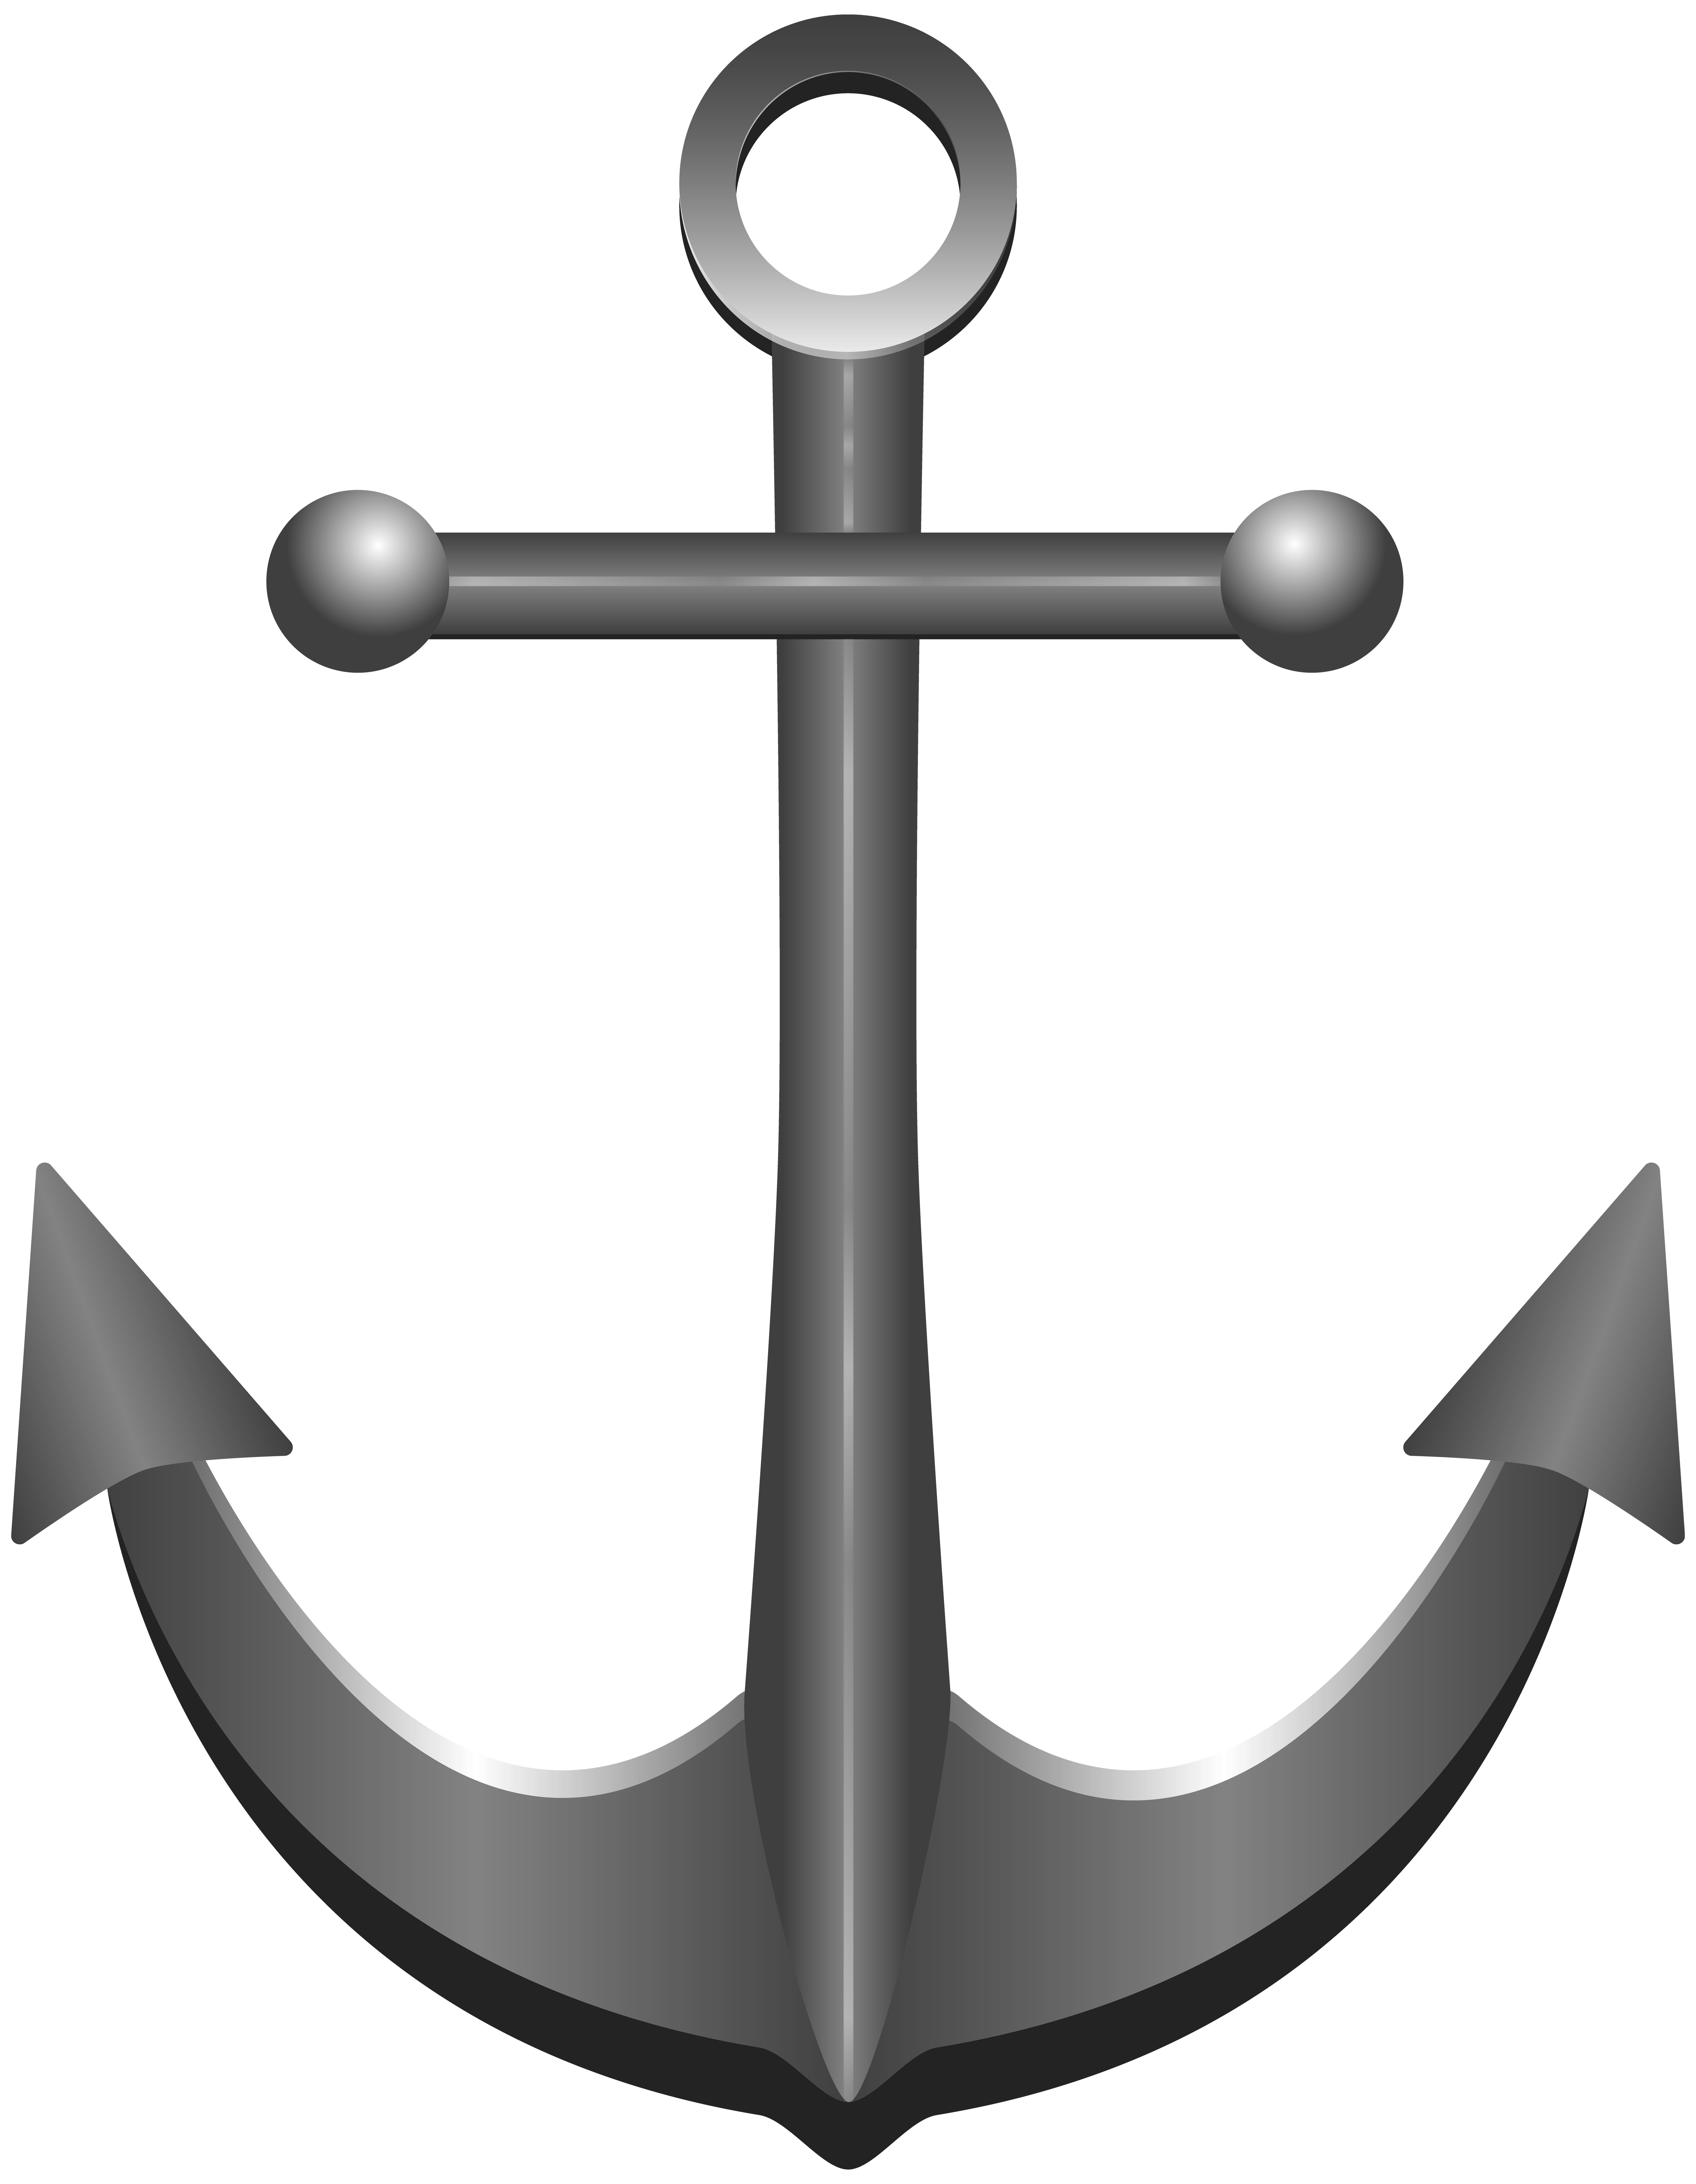 Anchor with banner png. Transparent clip art image